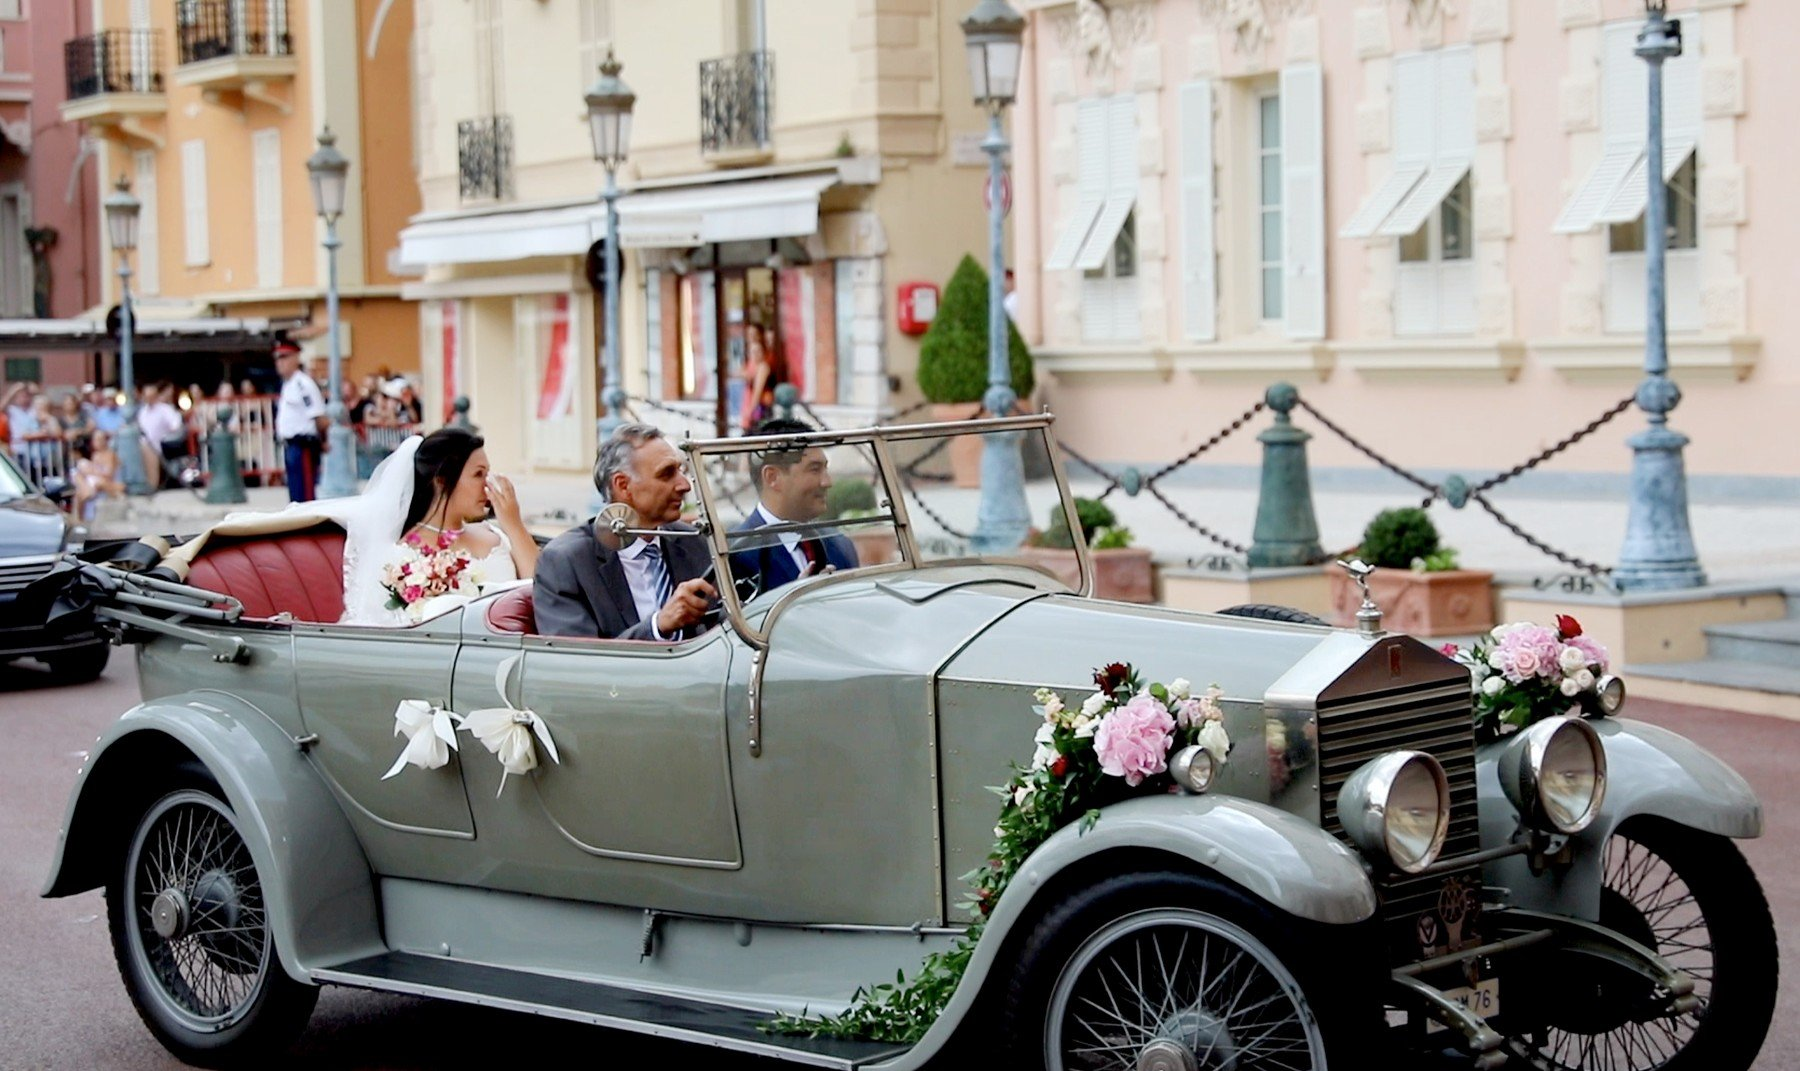 Marie Hoa Chevallier drives by car to the Cathedrale Notre-Dame-Immaculee in Monaco, on July 27, 2019, Press and public not welcome at the wedding of the son of Princess Stephanie of Monaco, Louis Ducruet and Marie Chevallier, the monegasque police had deposited all the streets that lead to the cathedral with crush barriers and police officers. 27 Jul 2019 Pictured: Marie Hoa Chevallier drives by car to the Cathedrale Notre-Dame-Immaculee in Monaco, on July 27, 2019, Press and public not welcome at the wedding of the son of Princess Stephanie of Monaco, Louis Ducruet and Marie Chevallier, the monegasque police had deposited all the streets that lead to the cathedral with crush barriers and police officers  Photo : Albert Nieboer /  Netherlands OUT / Point de Vue OUT., Image: 461140738, License: Rights-managed, Restrictions: ONLY Australia, Canada, Croatia, Denmark, Greece, Ireland, Israel, Italy, Japan, Lithuania, New Zealand, Norway, Poland, Portugal, Romania, Slovakia, Slovenia, South Africa, South Korea, Taiwan, Thailand, Turkey, Ukraine, United Arab Emirates, United Kingdom, United States, Model Release: no, Credit line: Profimedia, Mega Agency